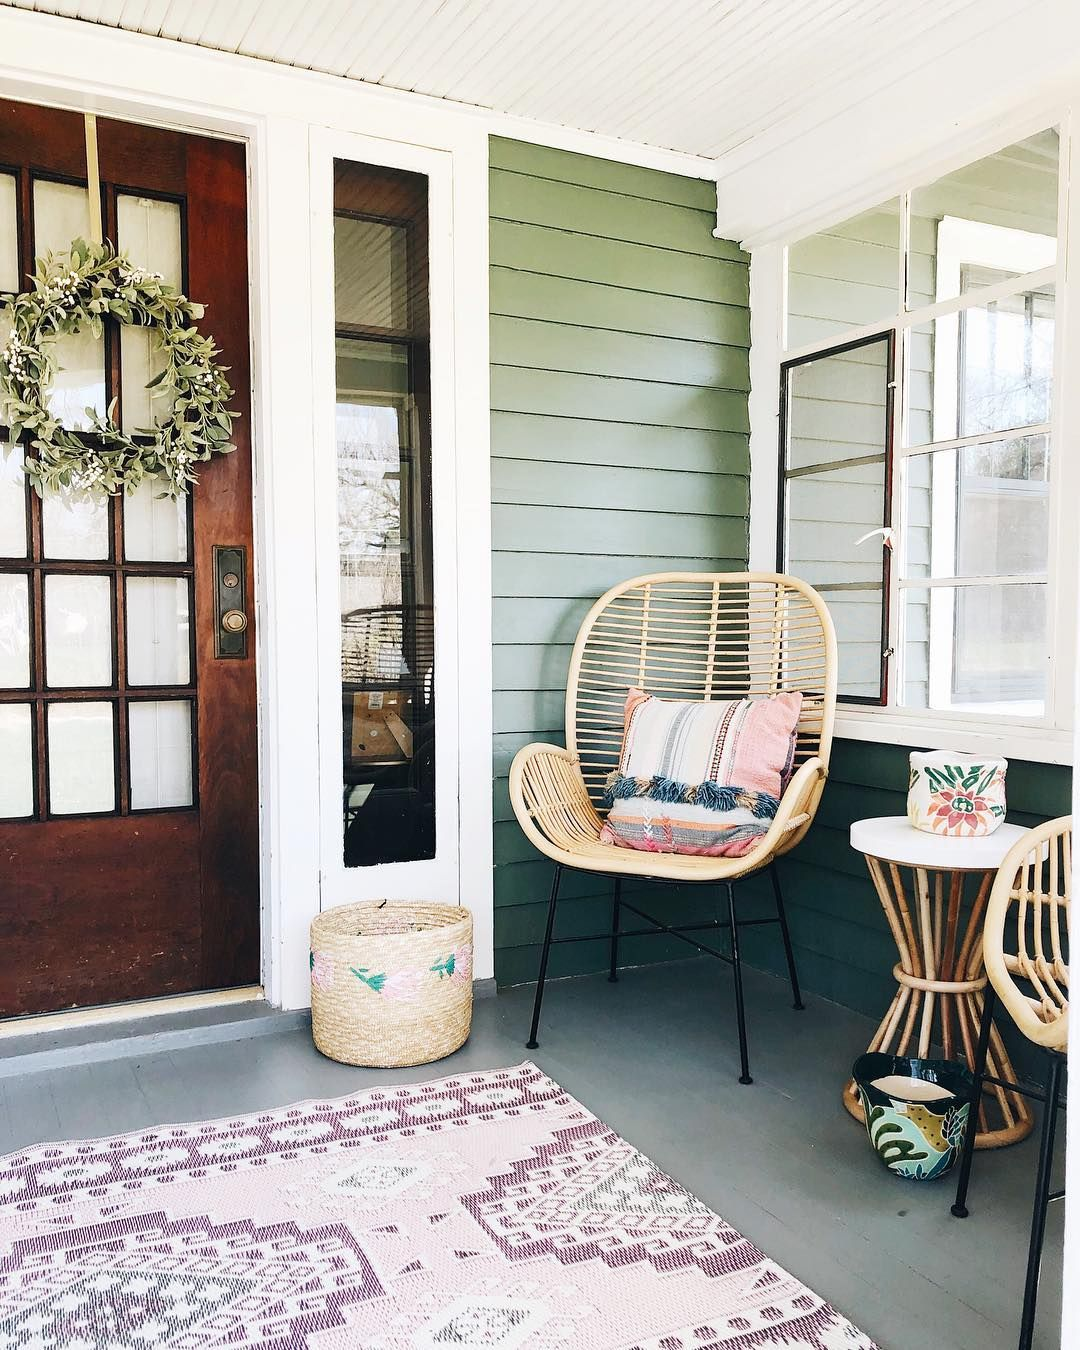 patio, wooden wall, concrete floor, patterned rug, white small round table